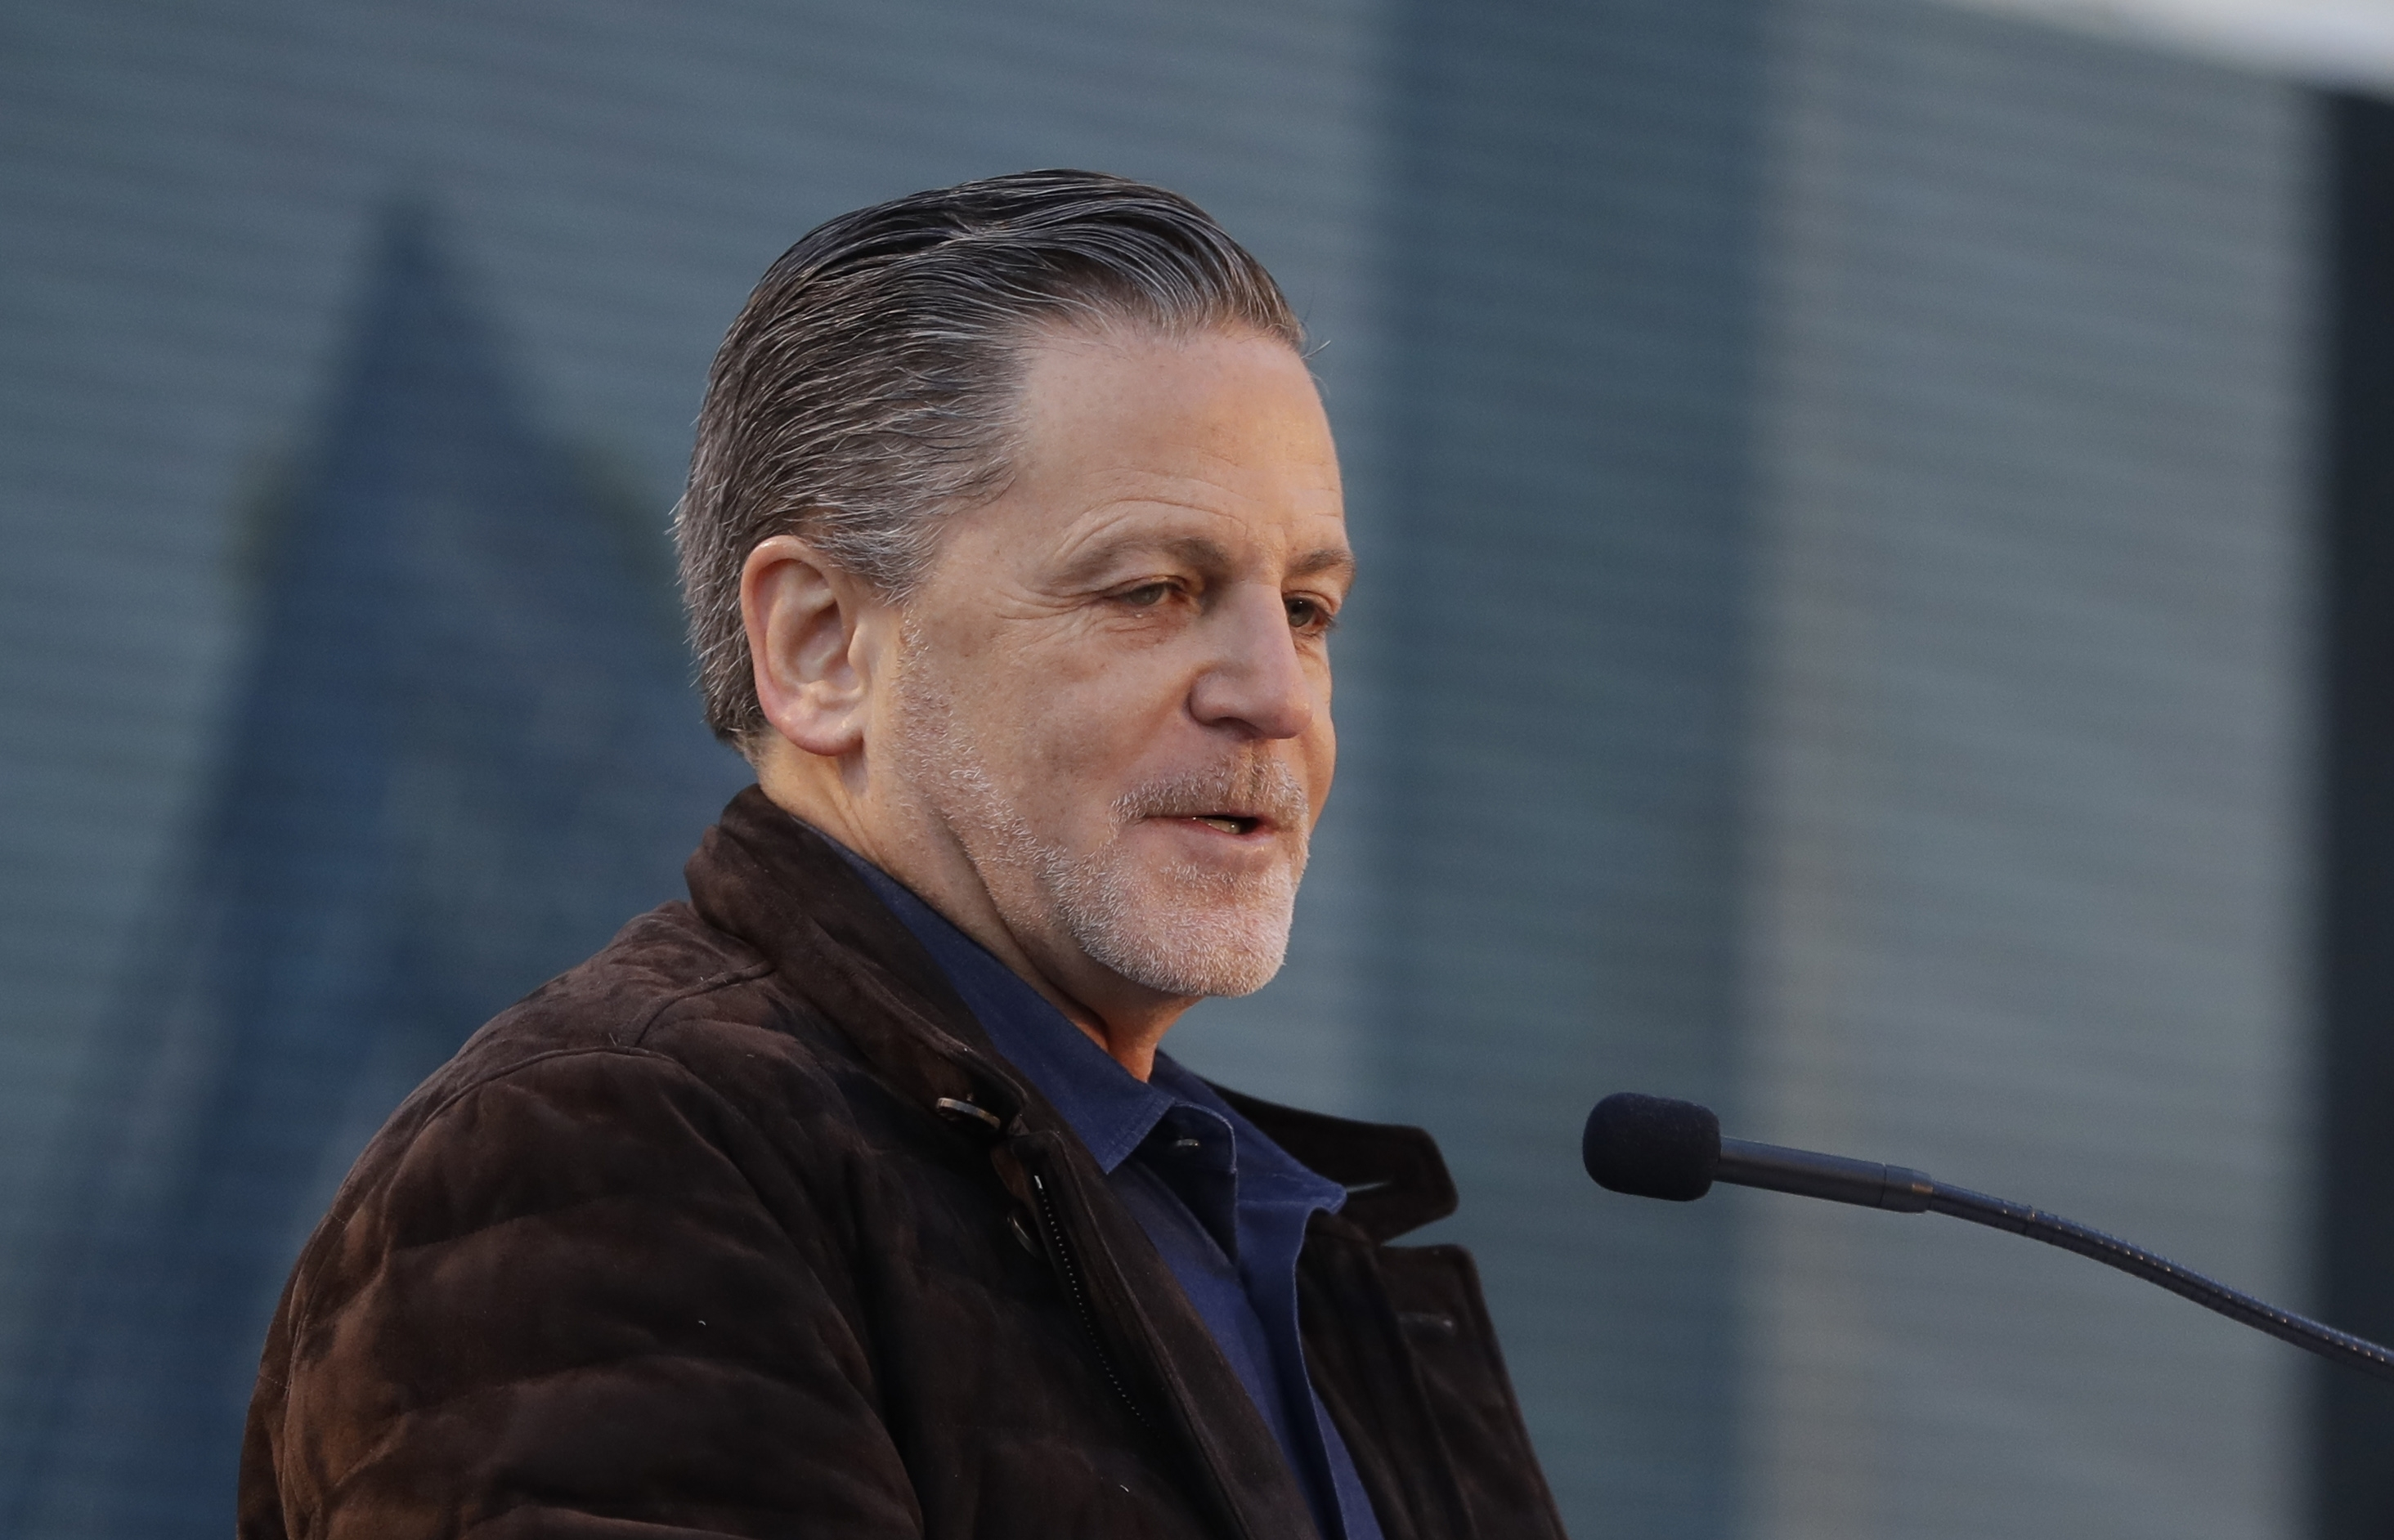 Dan Gilbert appears 'strong and steady' in recorded video to Quicken employees